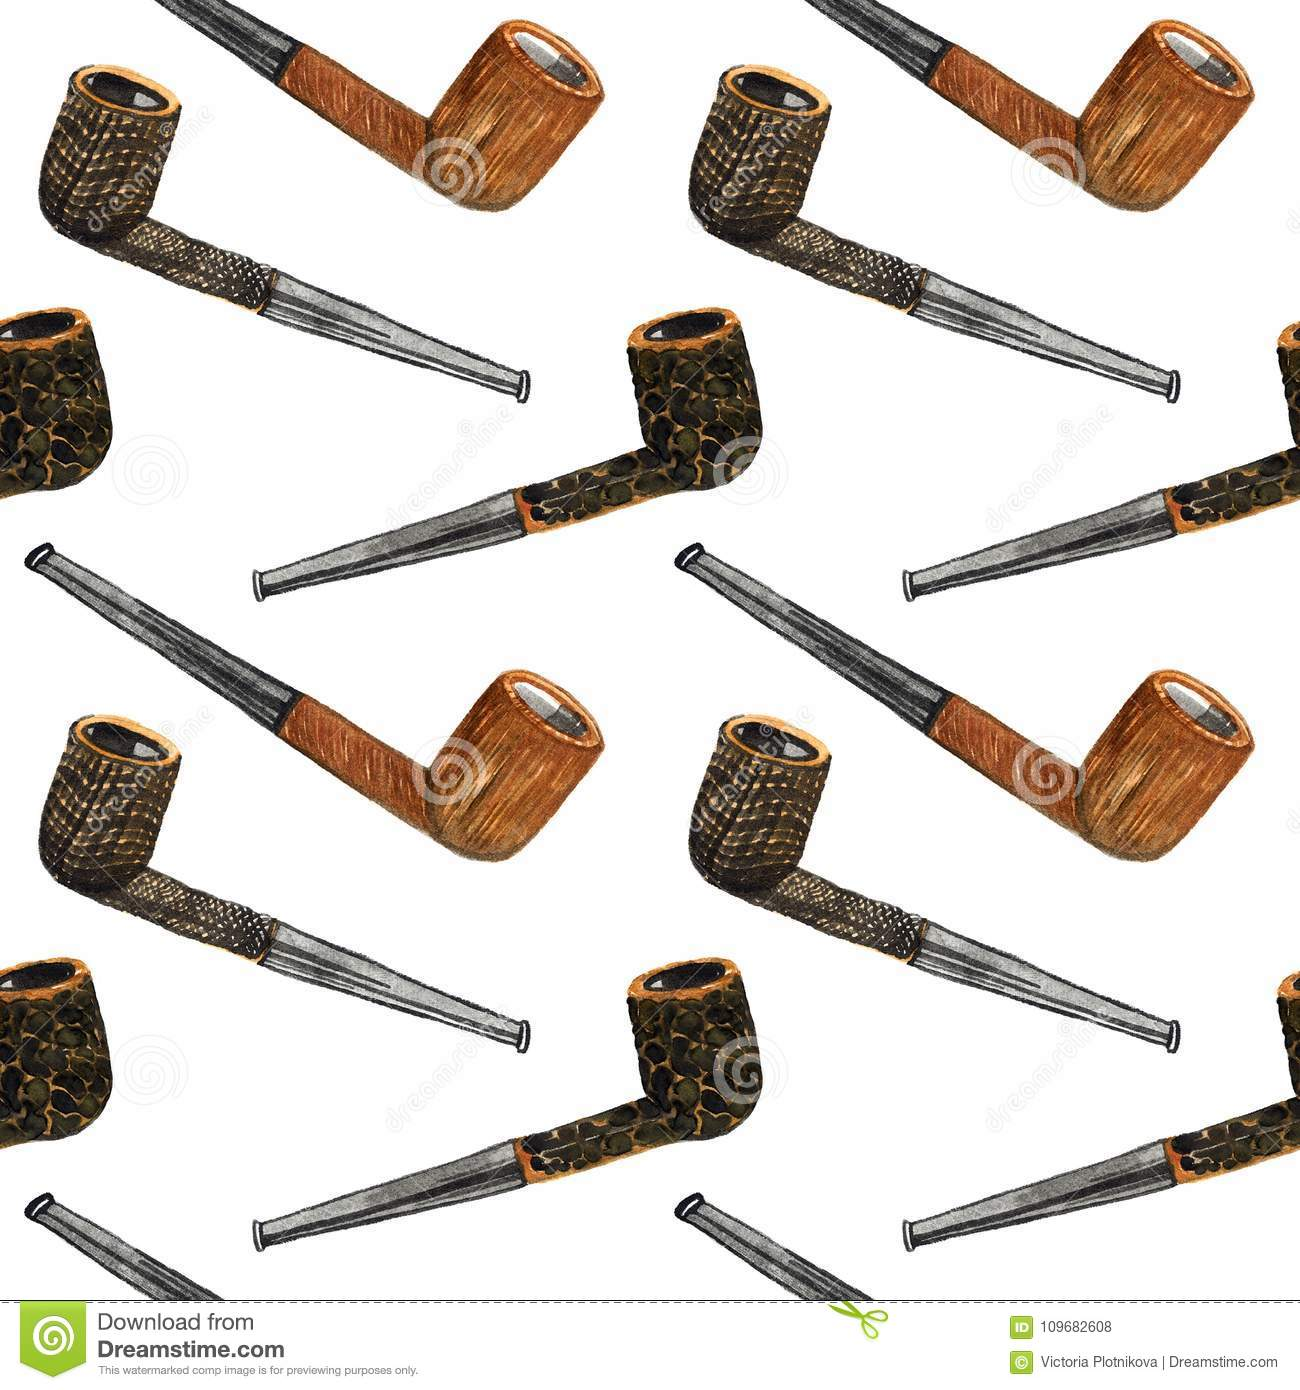 Tobacco Pipes Types Briar Processing Smooth, Sandblast And Rustic